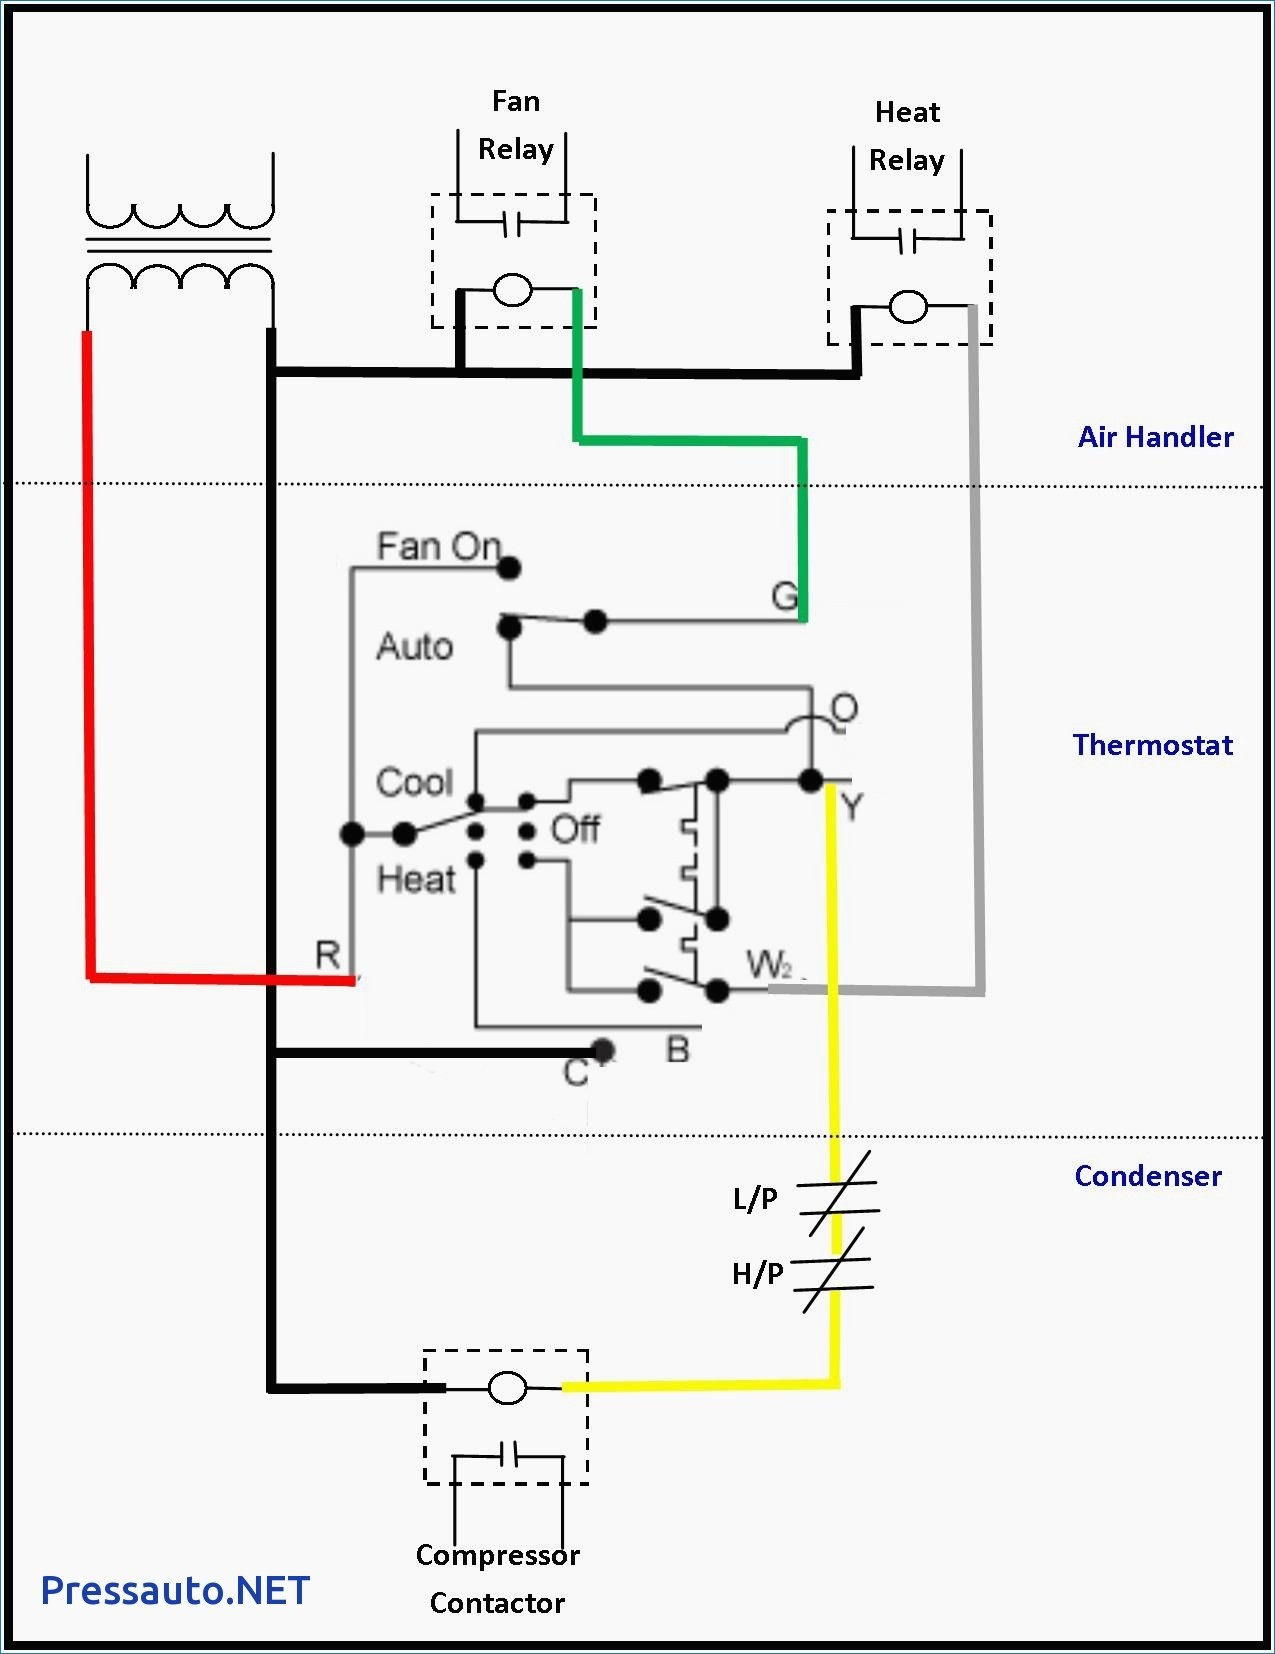 Copeland Condensing Unit Wiring Diagram Library Udqr107w4 For Electrical Diagrams Air Conditioner Compressor Condenser